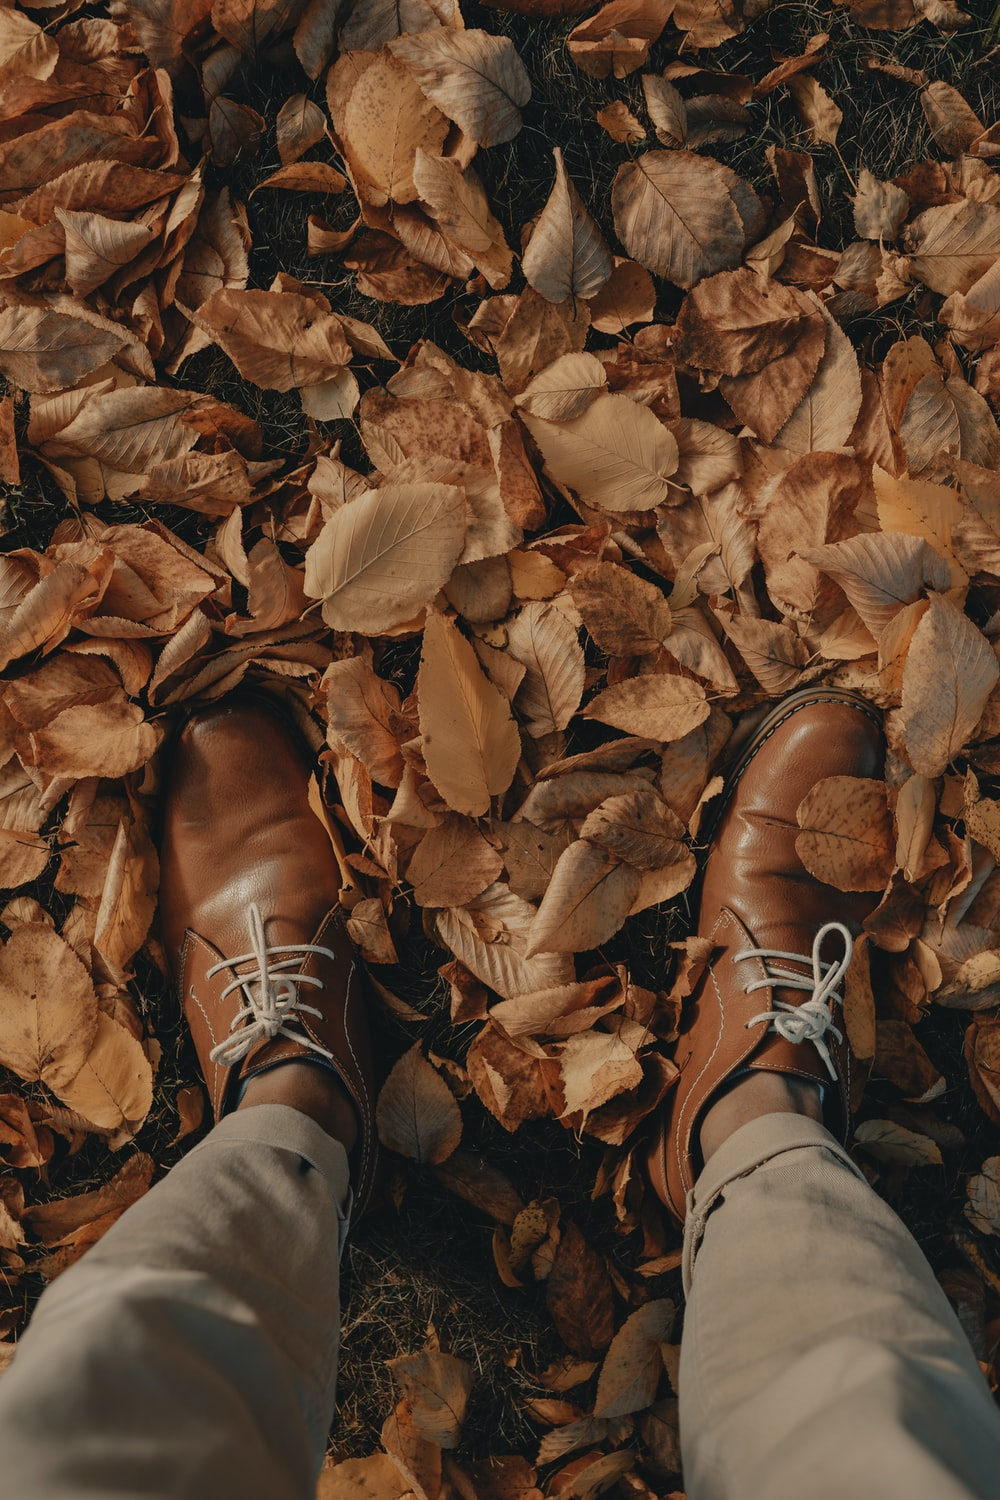 person wearing brown leather shoes standing on dried leaves